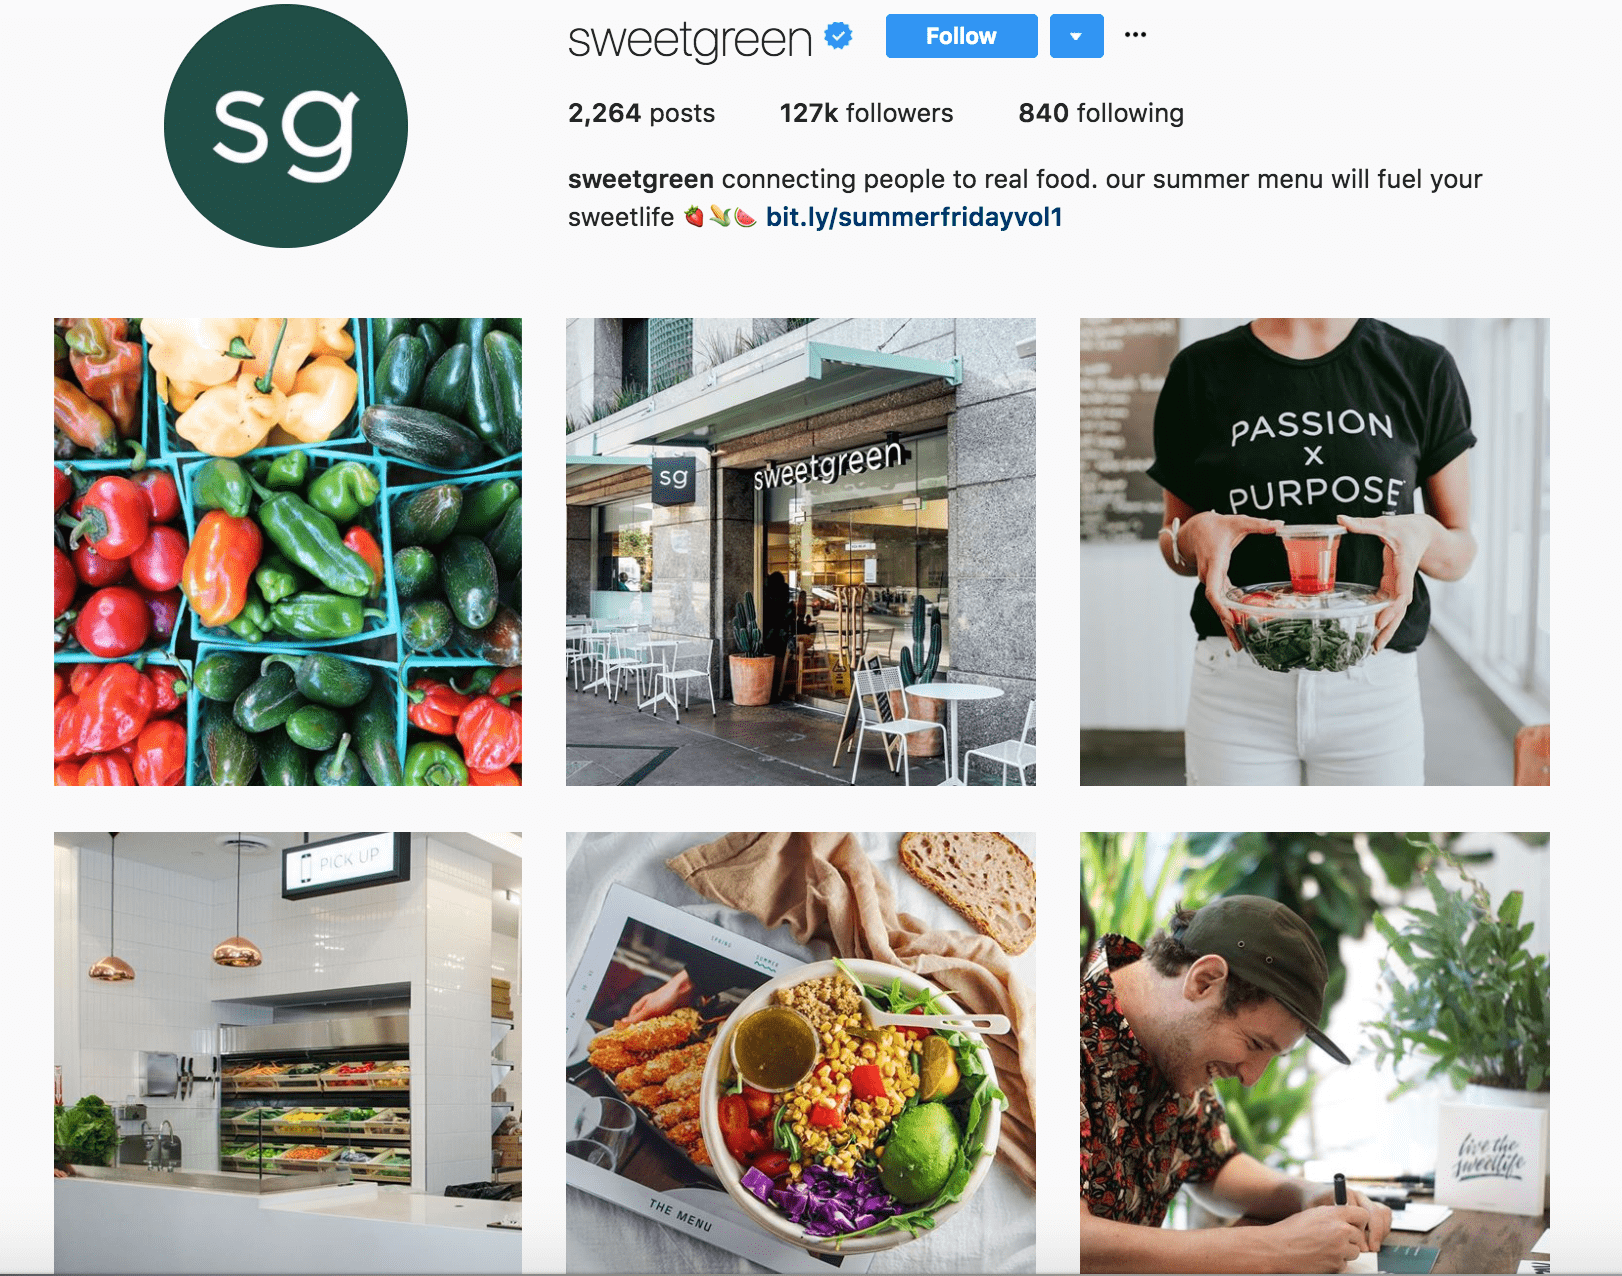 examples of social media campaigns sweetgreen